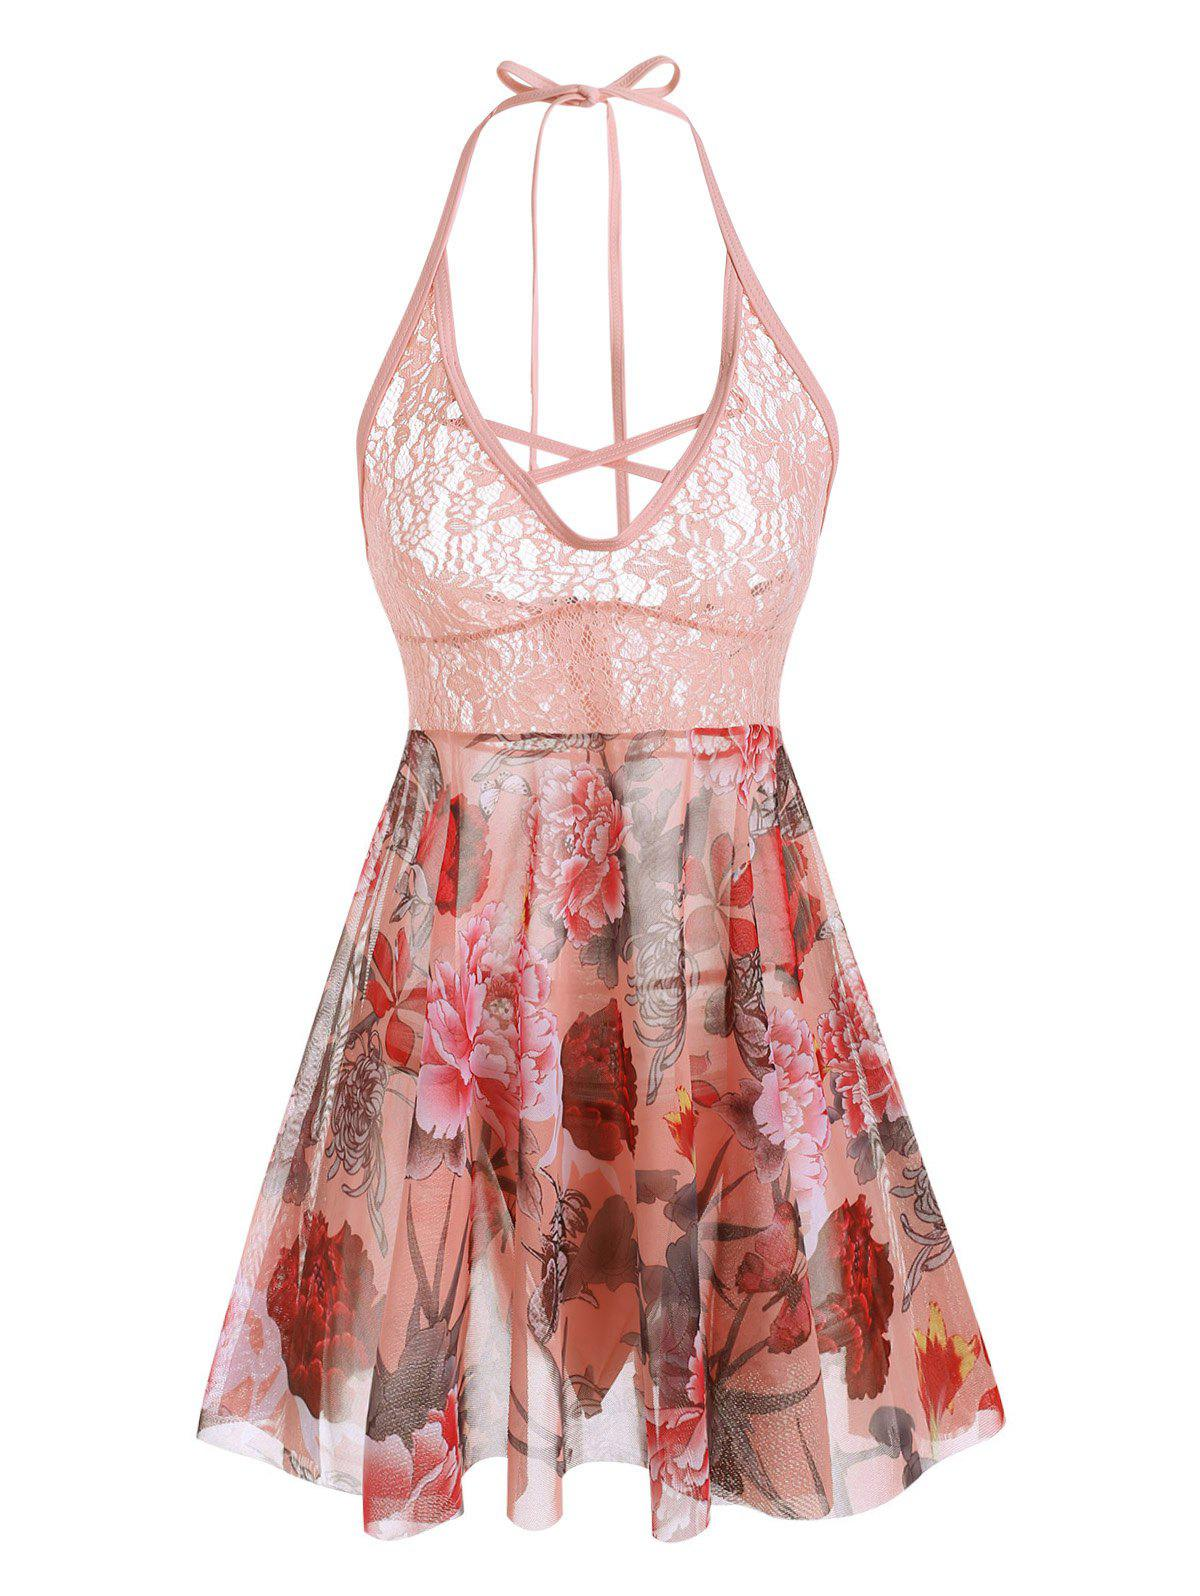 Plus Size Halter Lace Insert Floral Print Babydoll Set - LIGHT PINK 5X